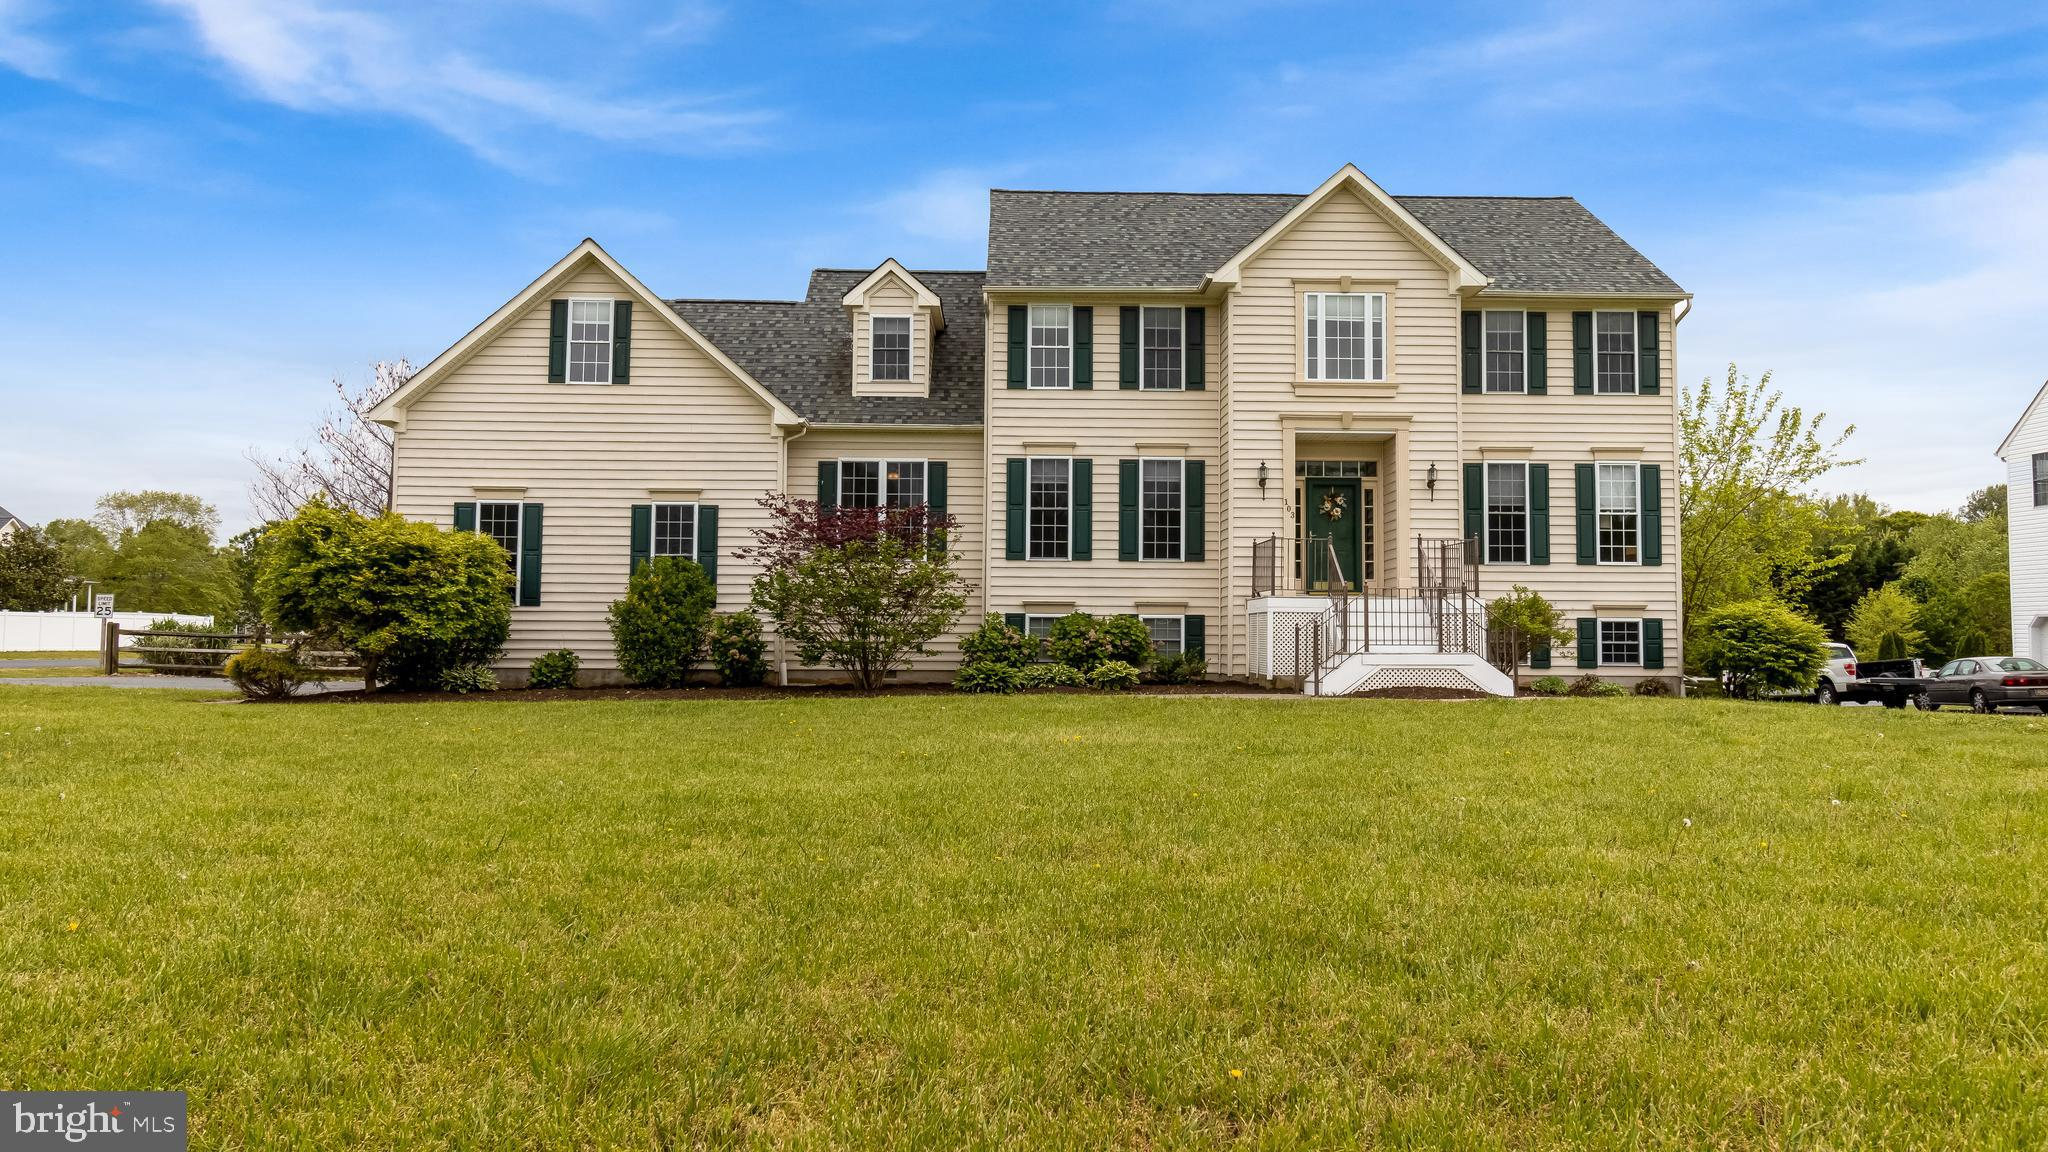 103 W Goldfinch Lane, Centreville, MD 21617